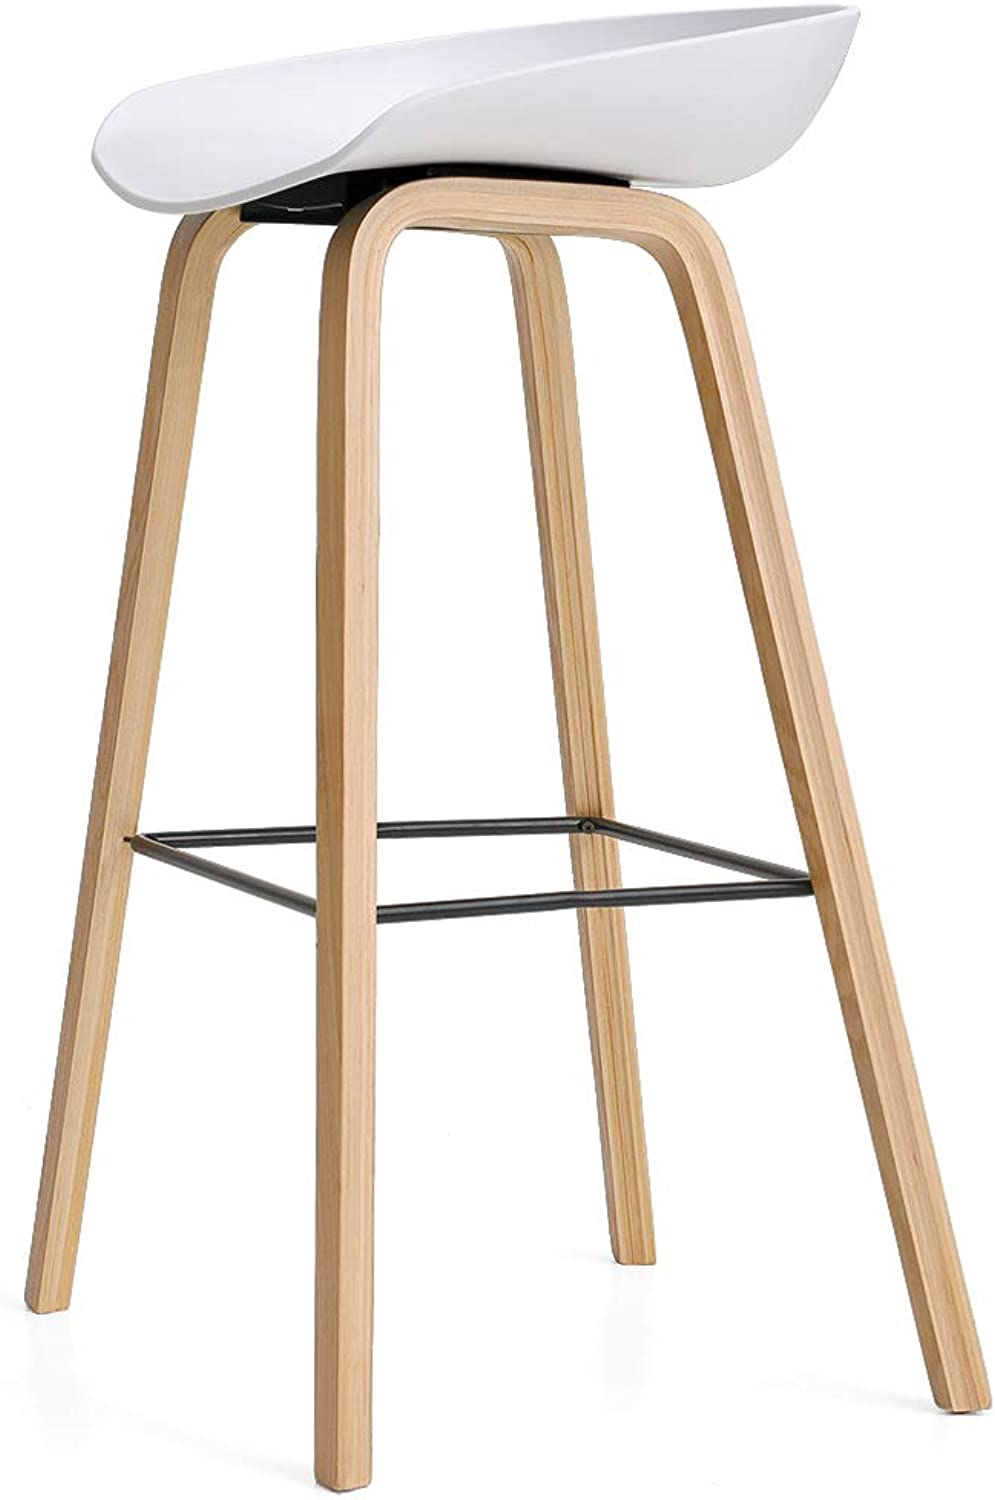 Natural Bamboo shoes Rack Change shoes Bench Simple Bed end Stool Storage shoes Bench Bamboo Change shoes Bench 90  30  50cm